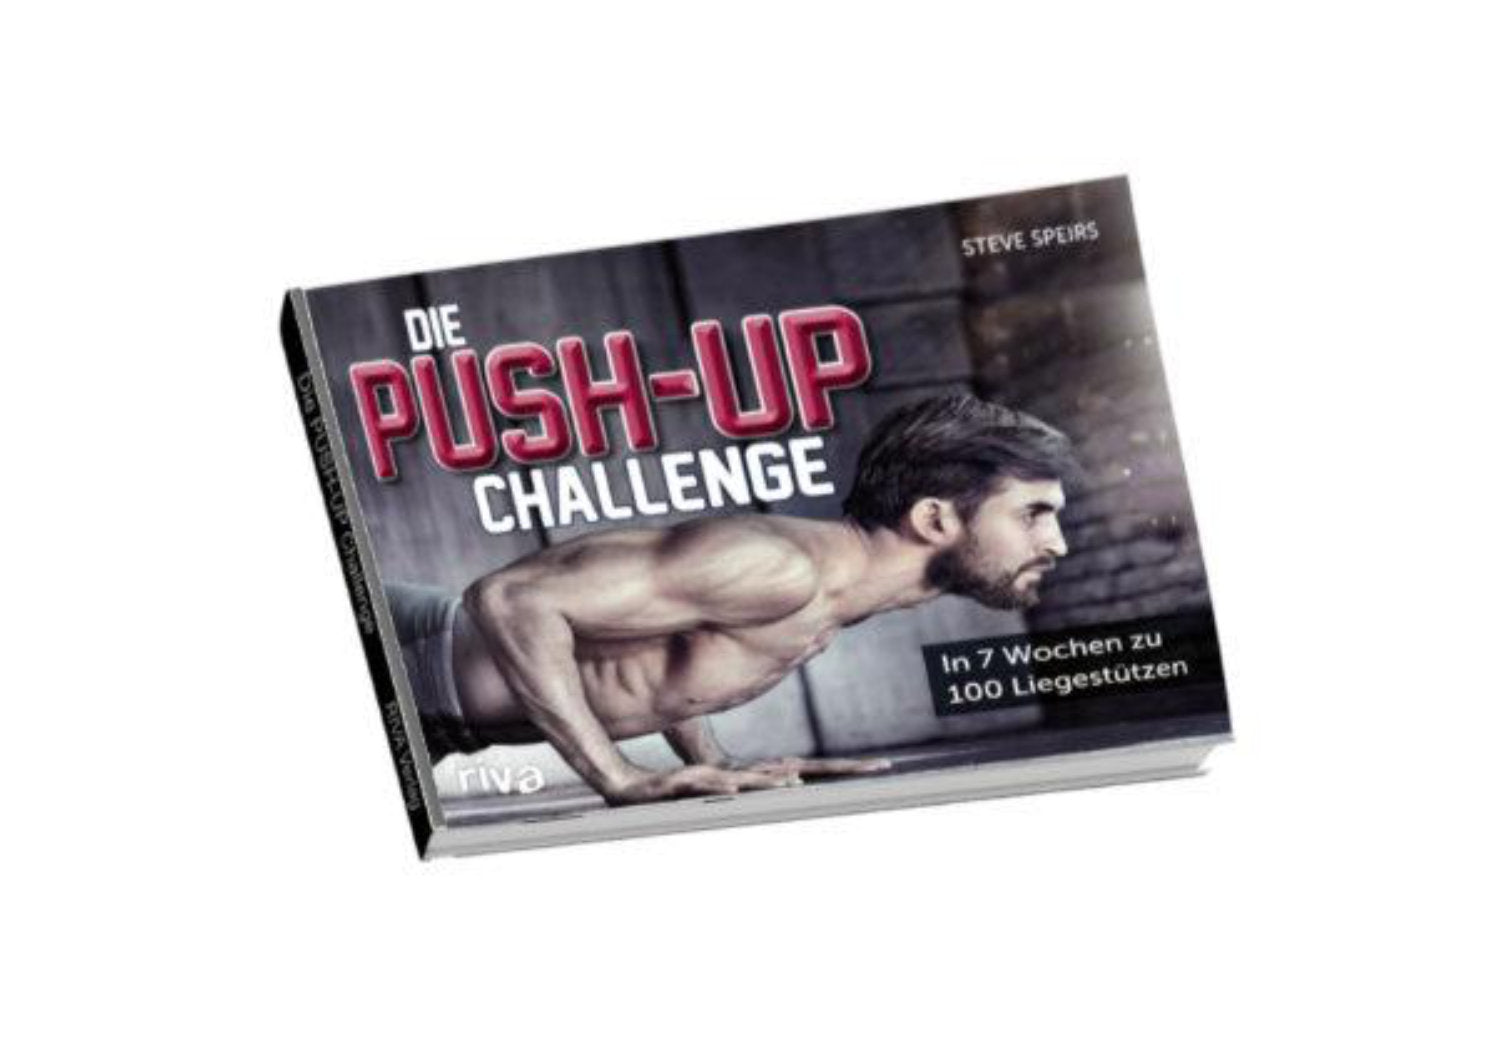 Die Push-up-Challenge Buch